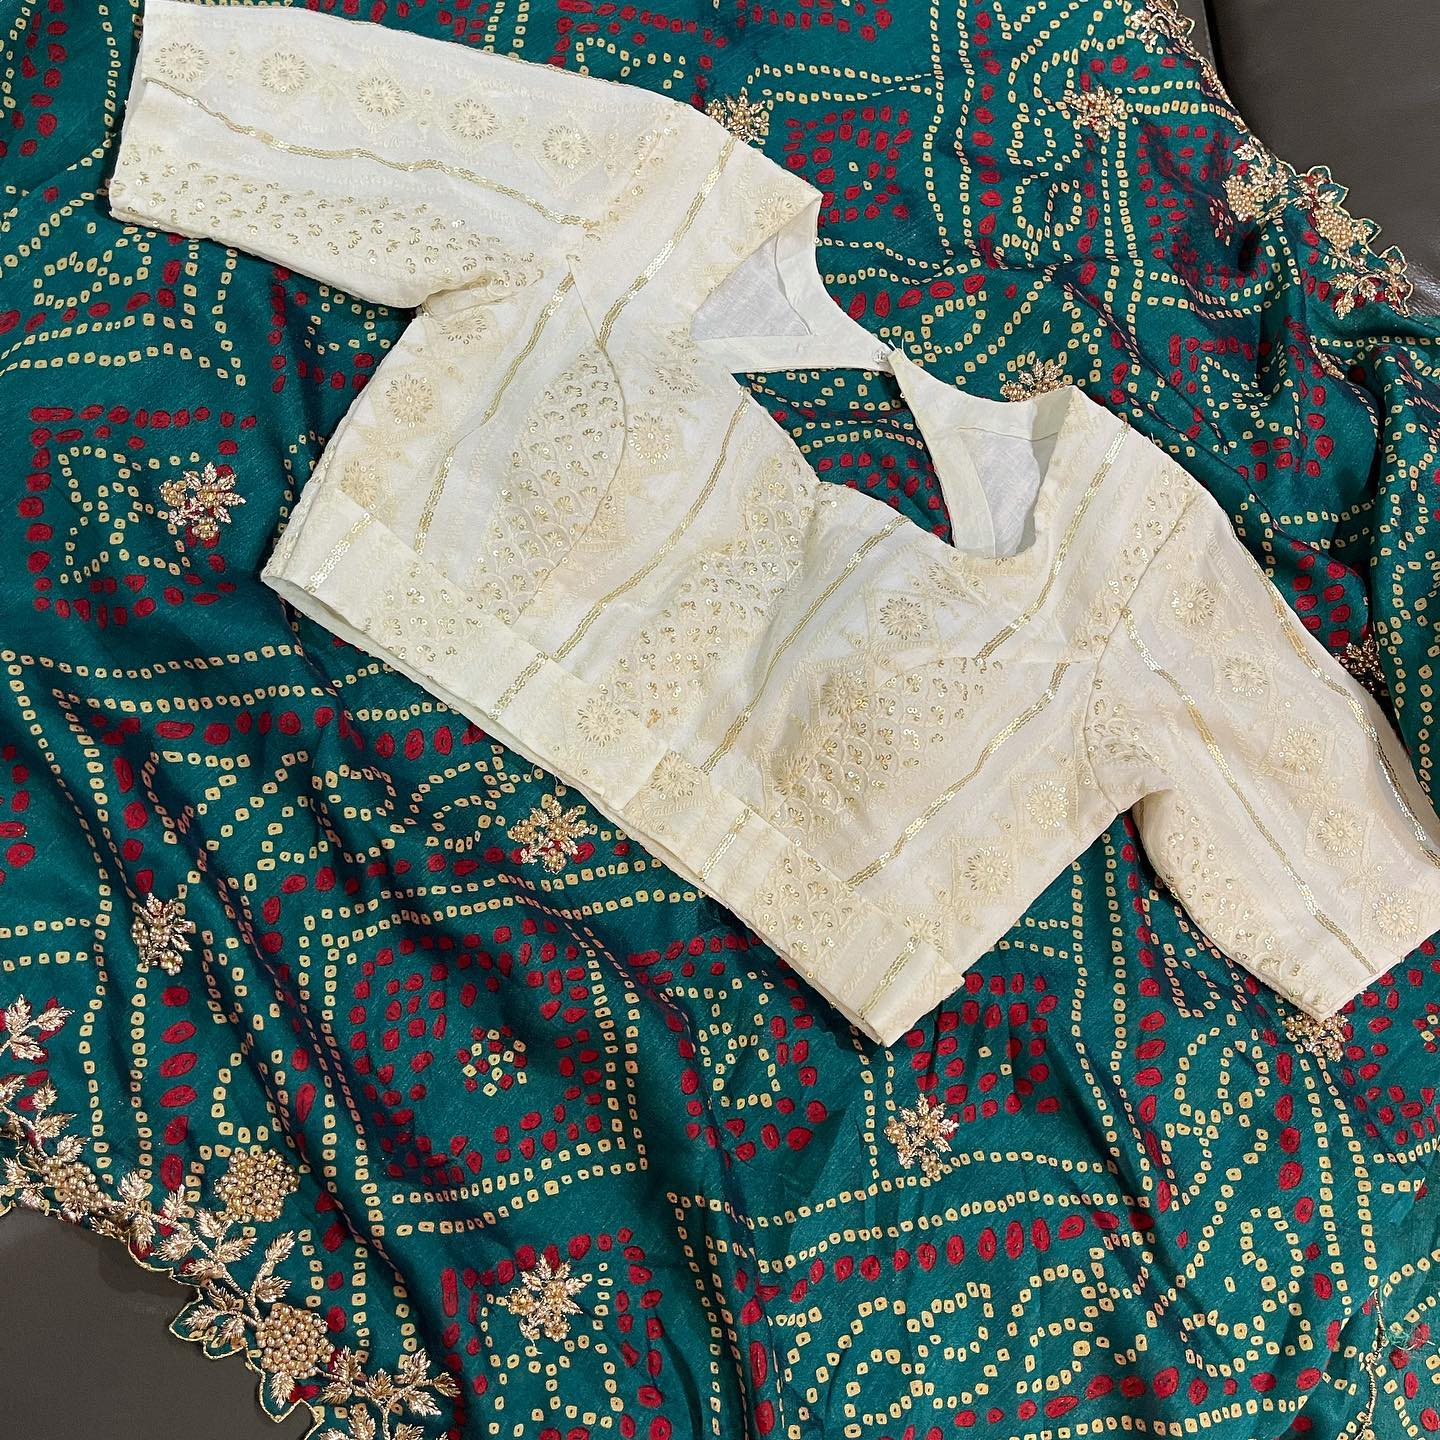 Beautiful bandhini saree with pearl white embroidery blouse. Price : 5000 INR. 2021-09-30